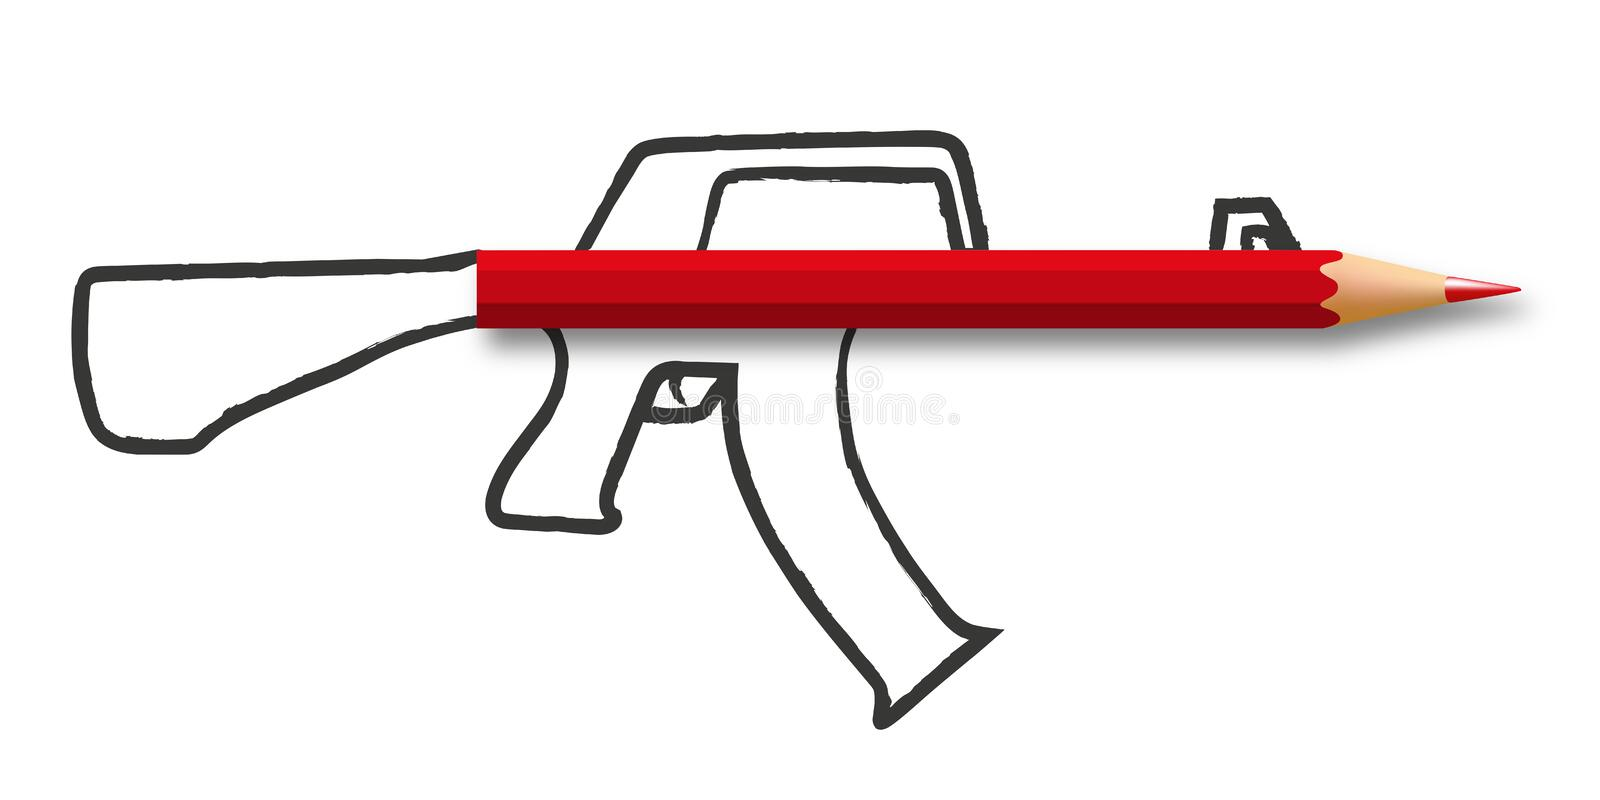 Information war symbol with a pencil associated with a weapon vector illustration